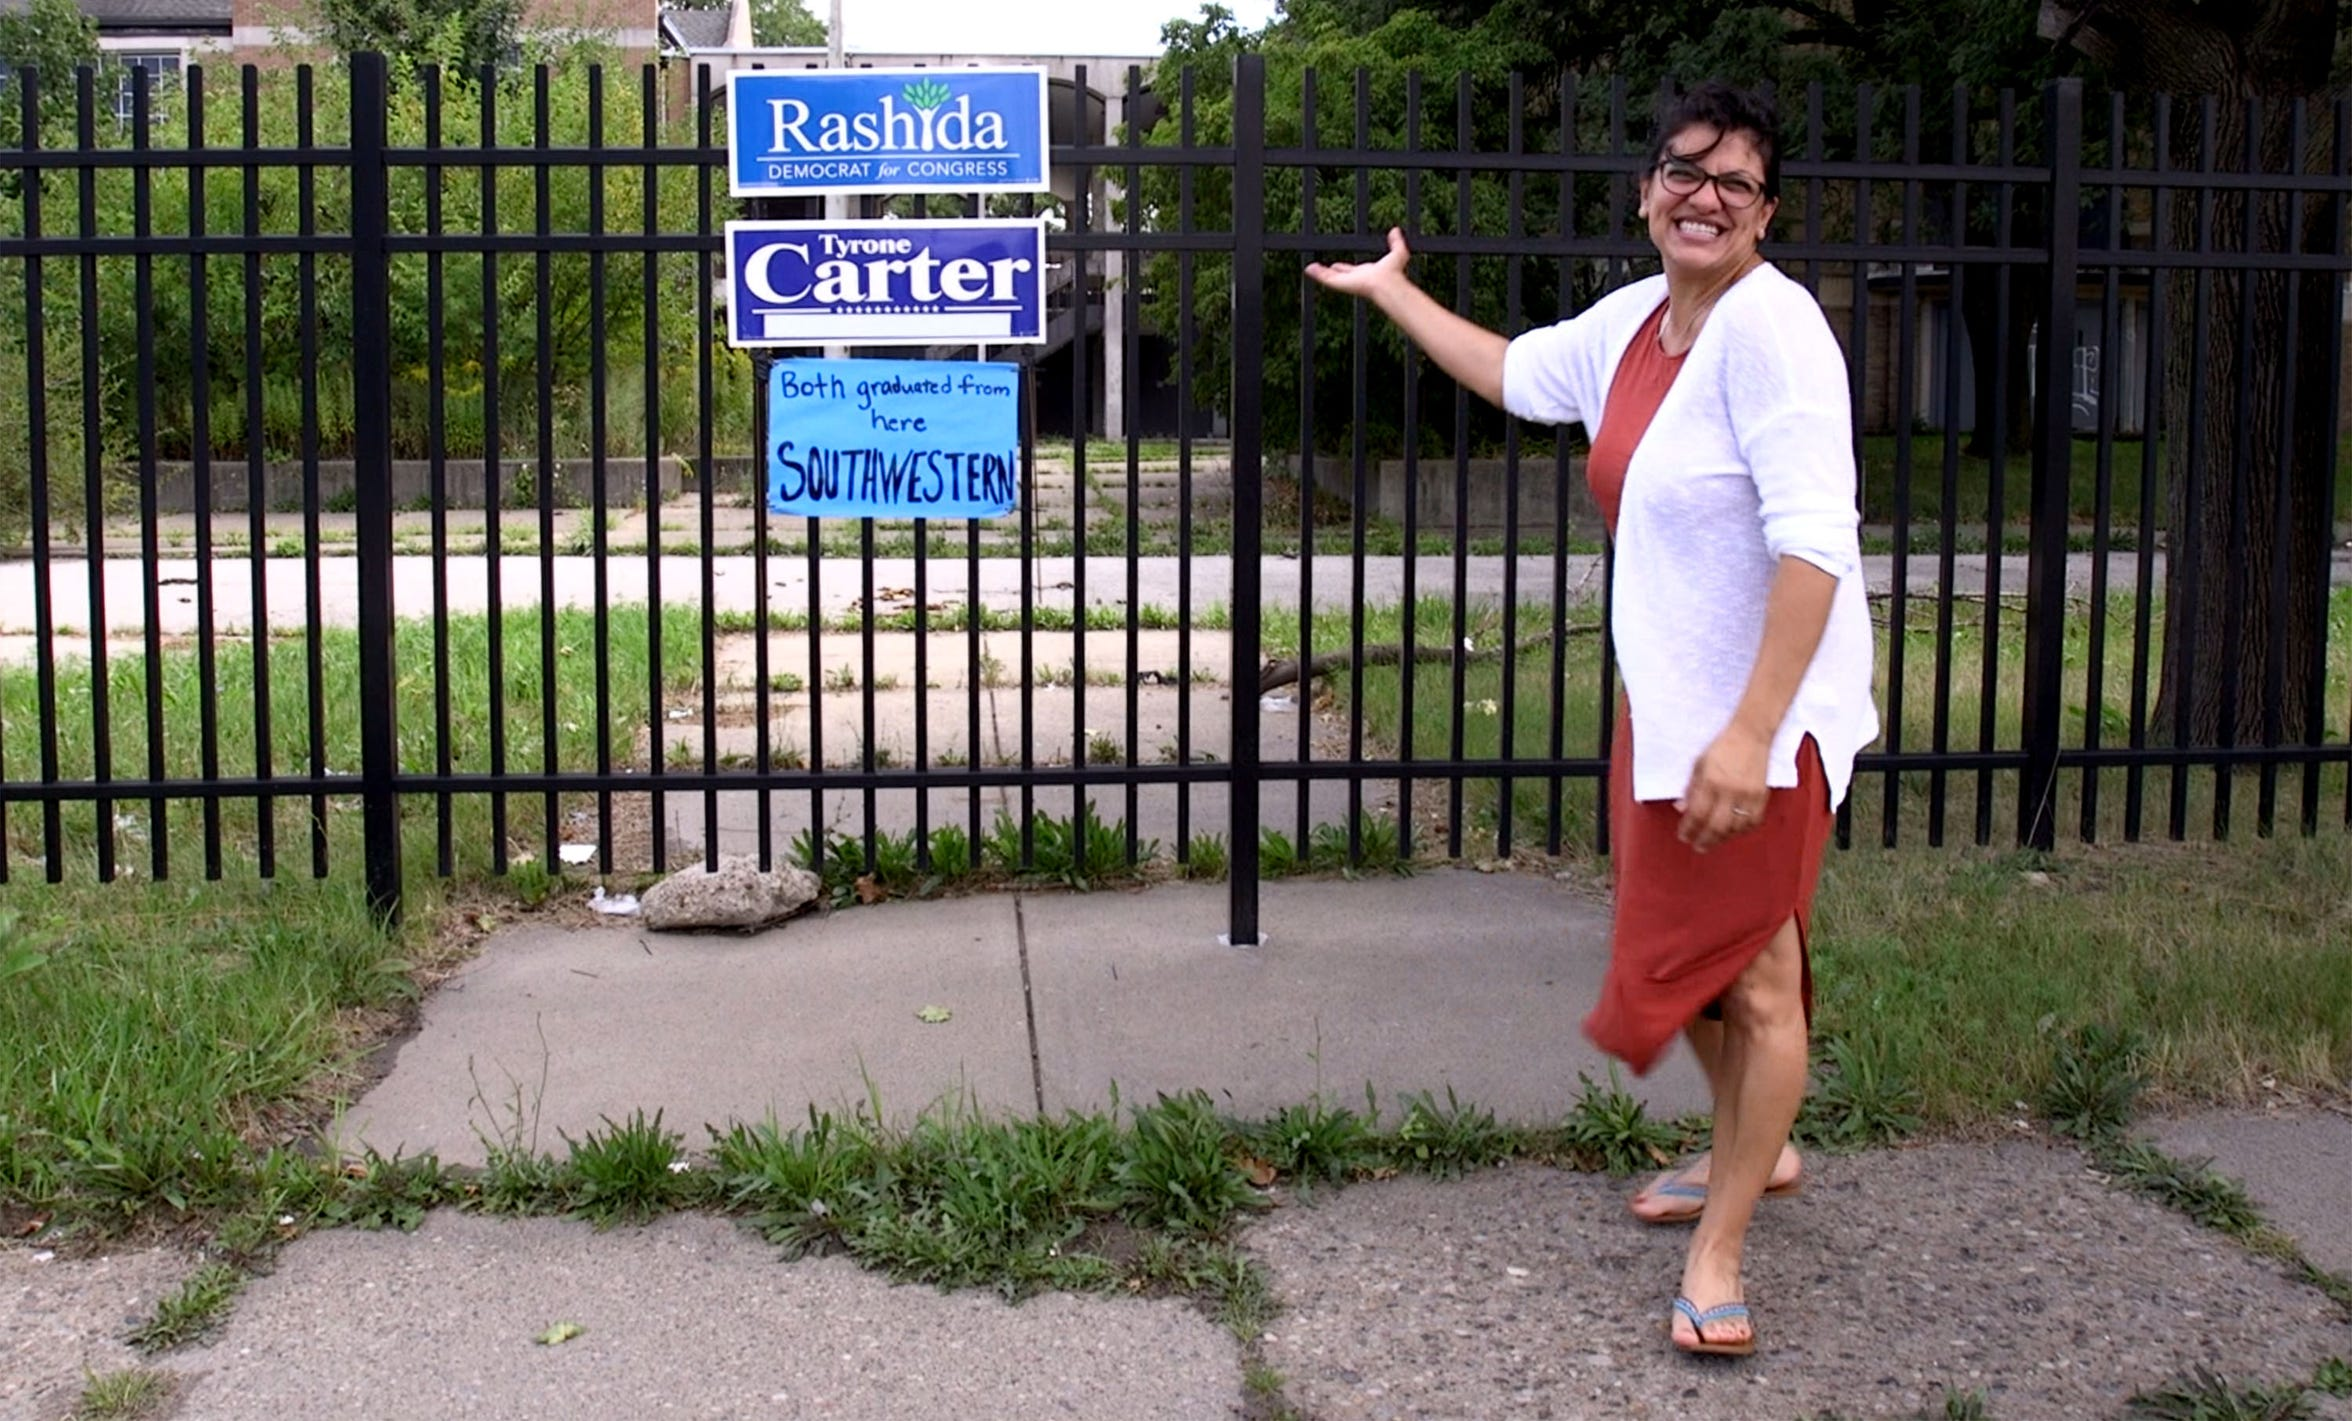 Rashida Tlaib proudly shows off a sign someone made and hung on a gate at a now closed Southwestern High School where Tlaib attended on August 21, 2018 in Detroit.